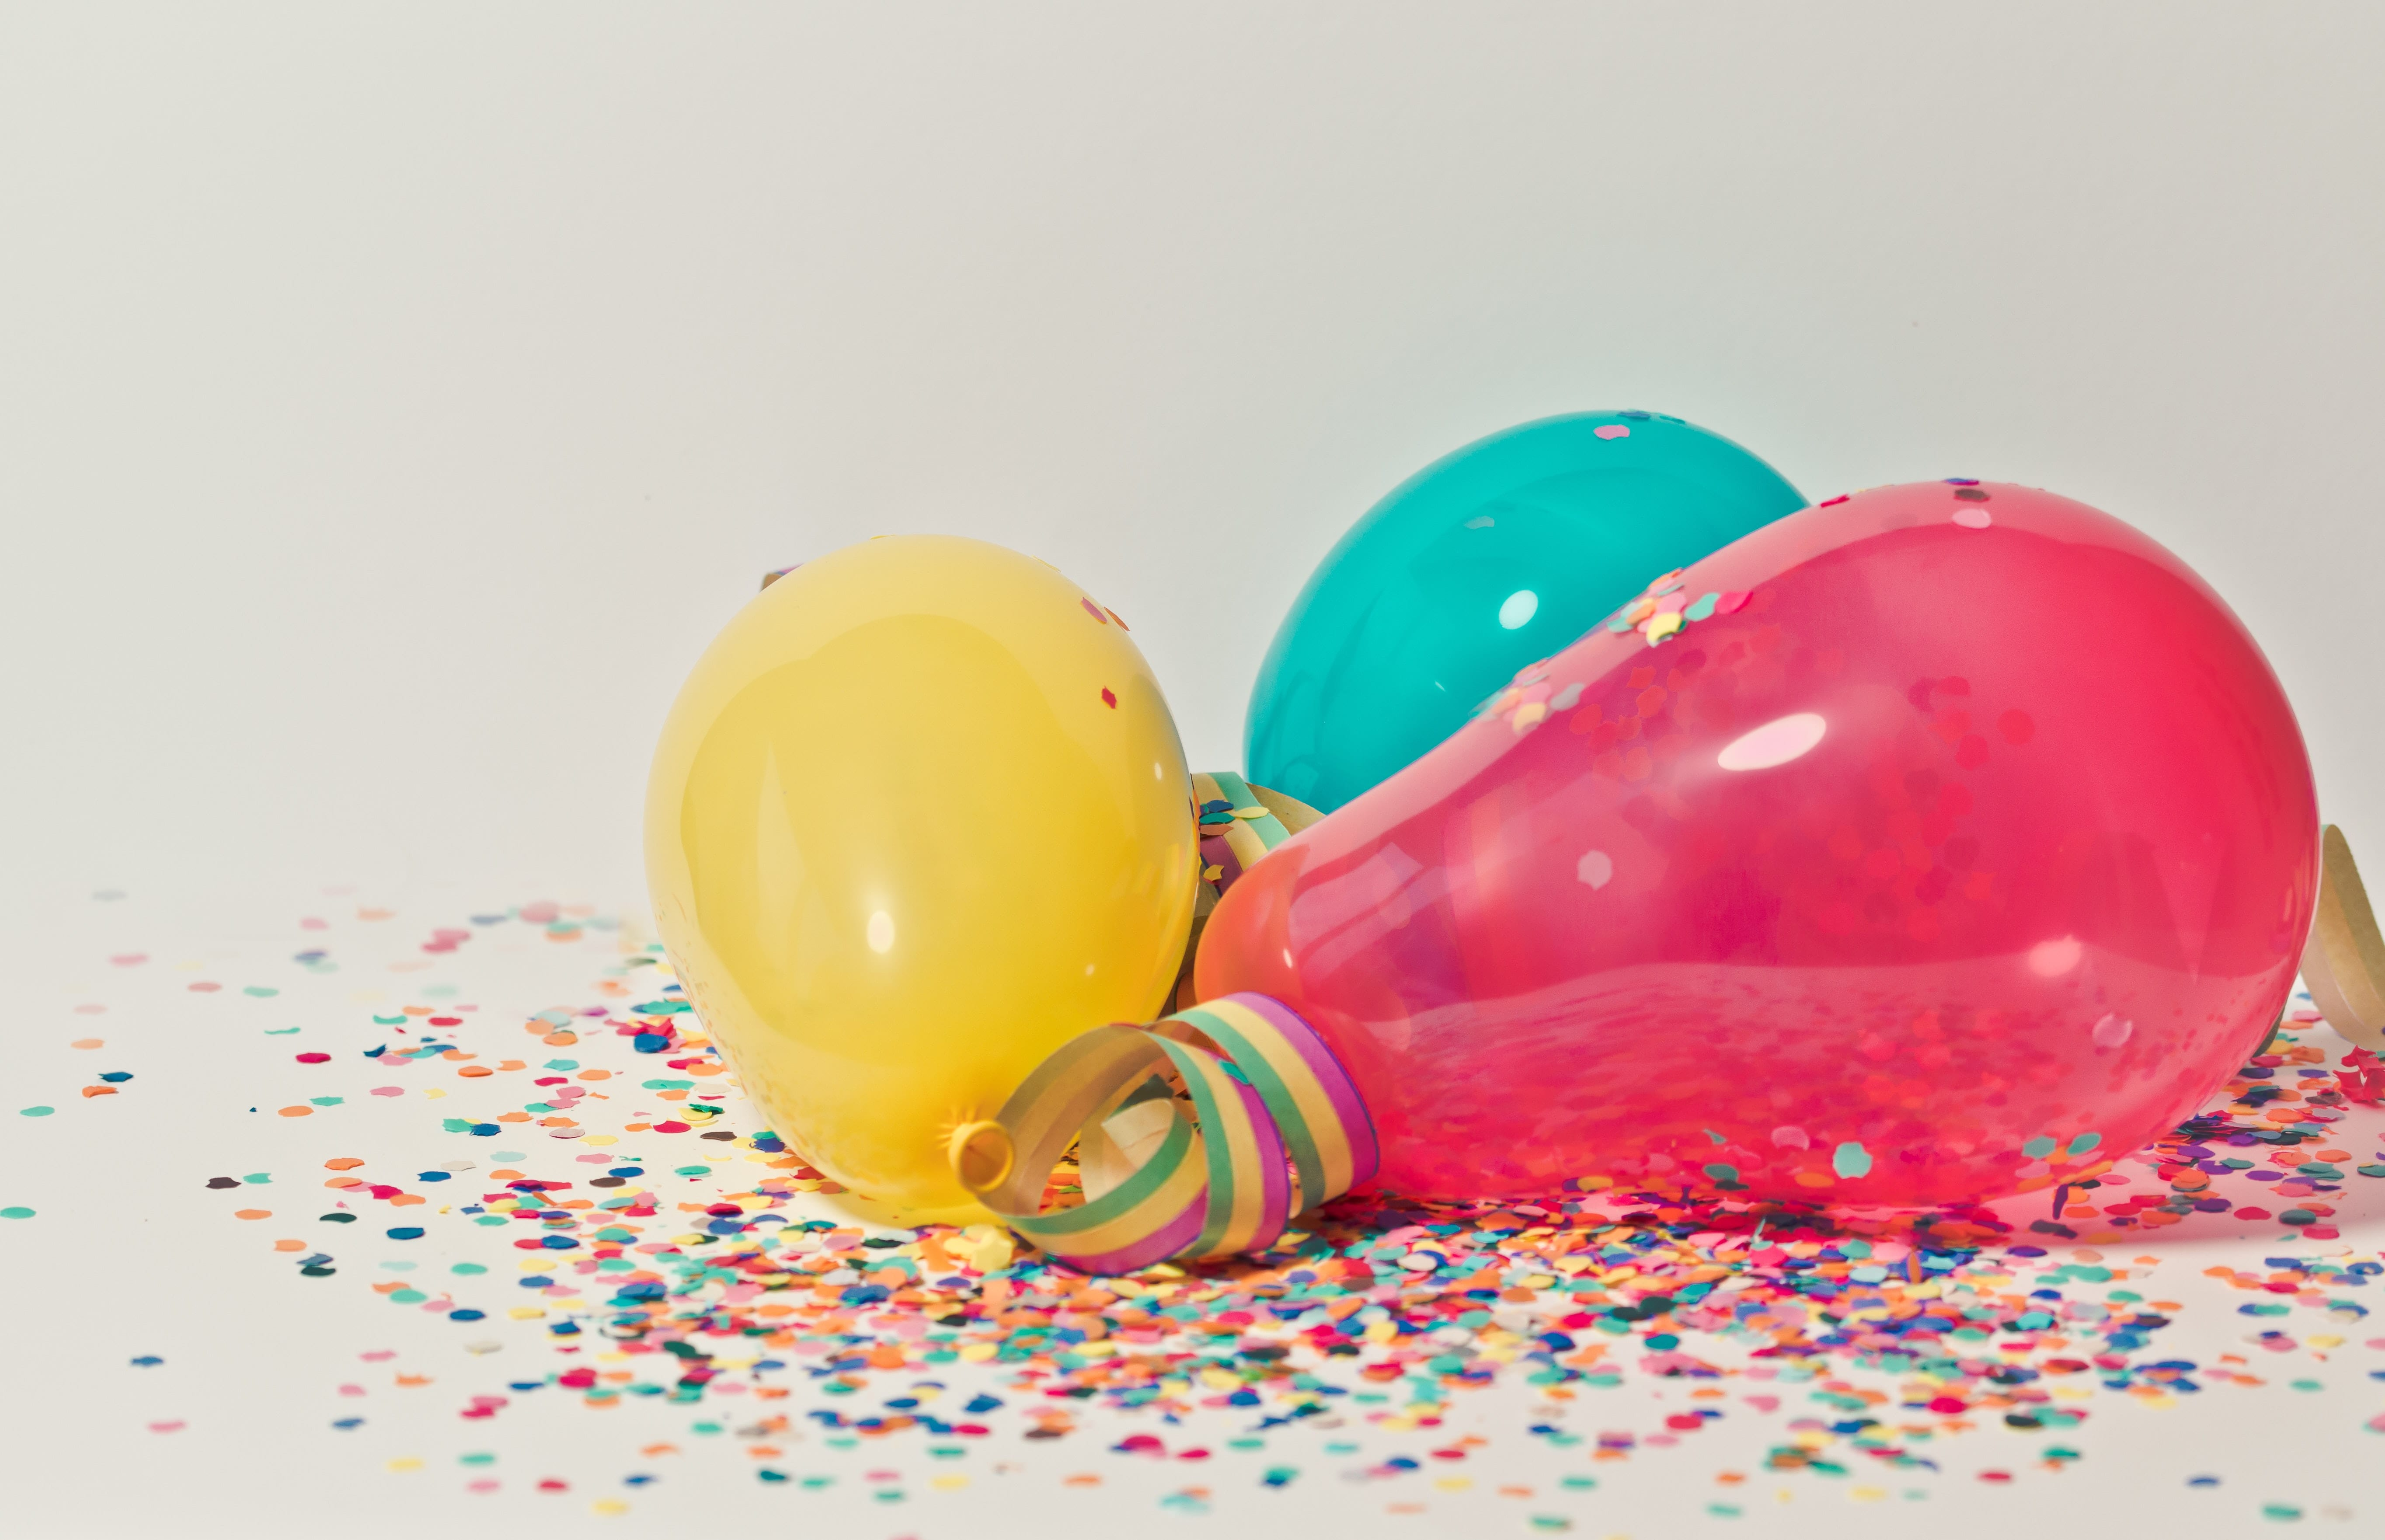 Yellow, pink, and blue party balloons lay on top of multi-colored confetti